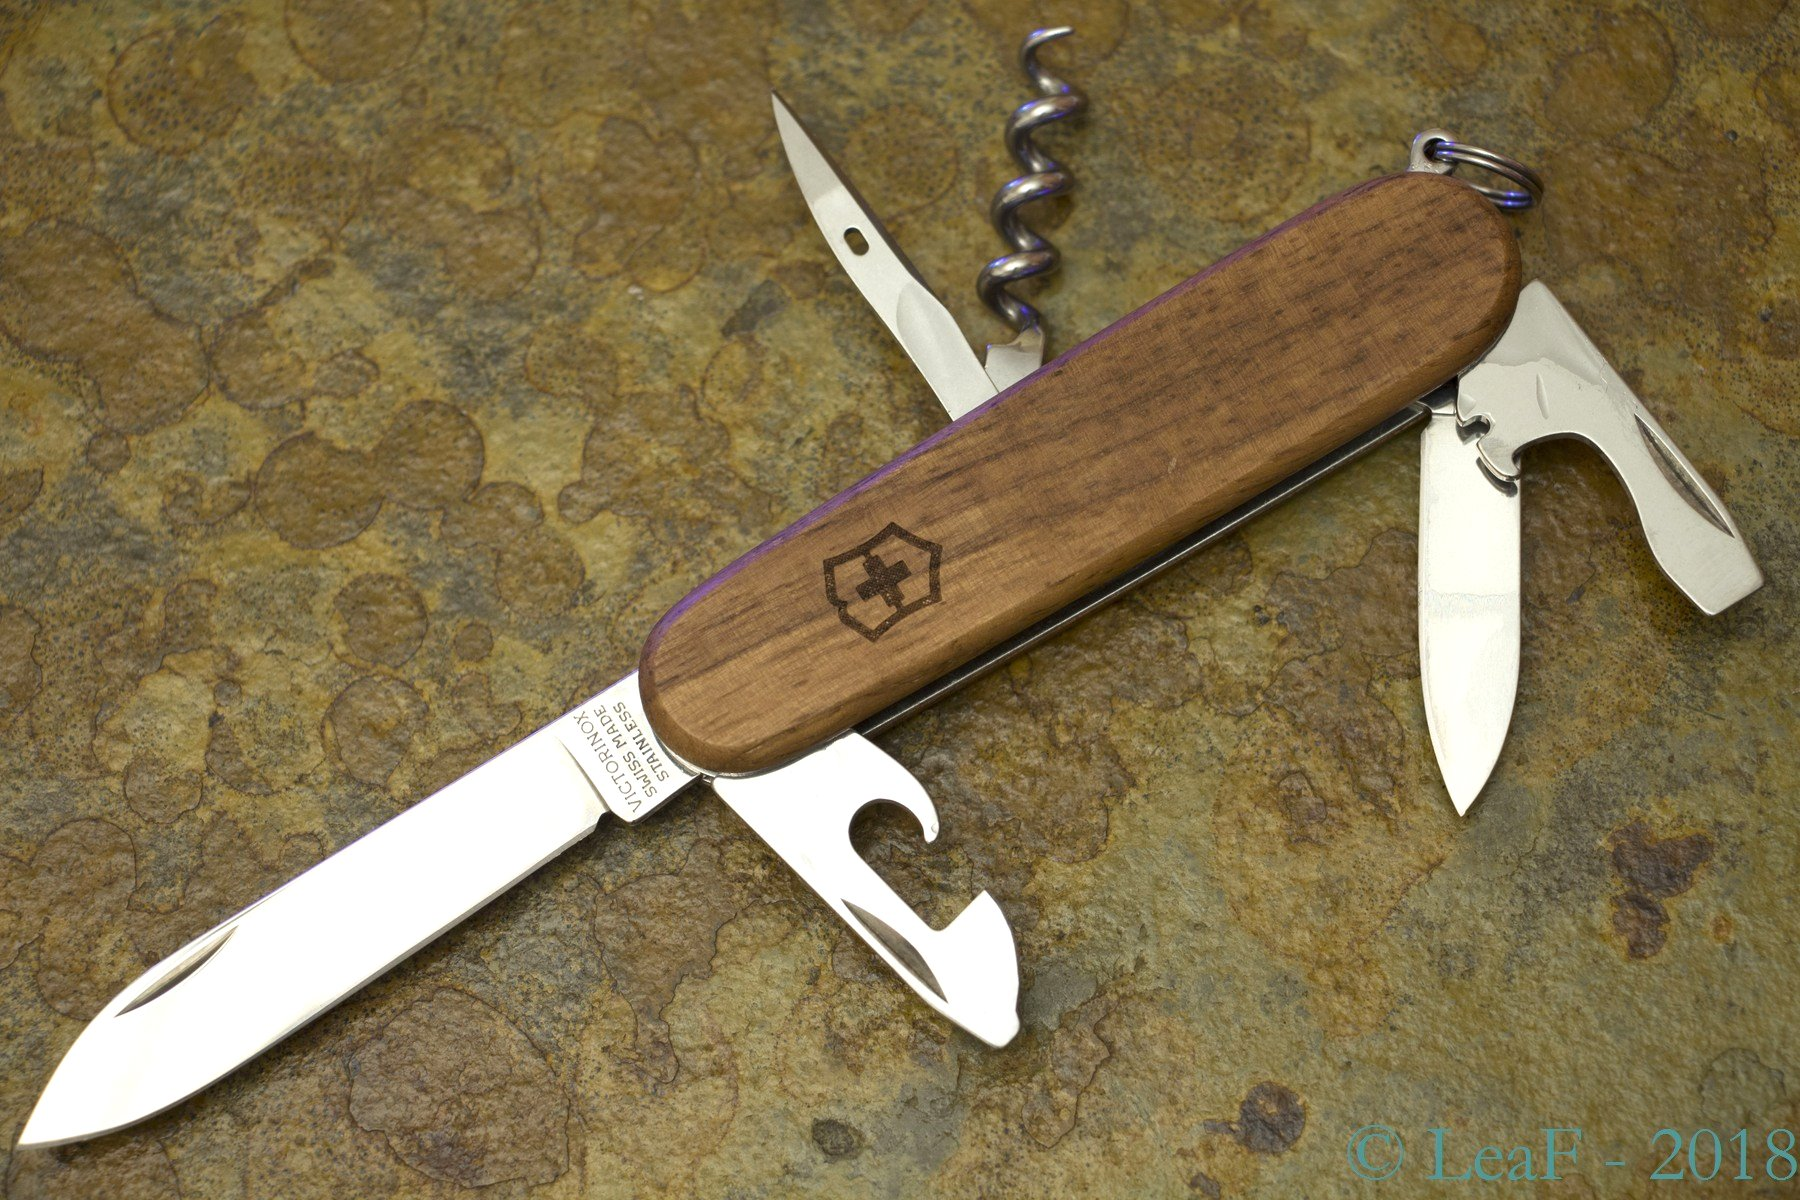 770 Spartan Wood Leaf S Victorinox Knives Collection